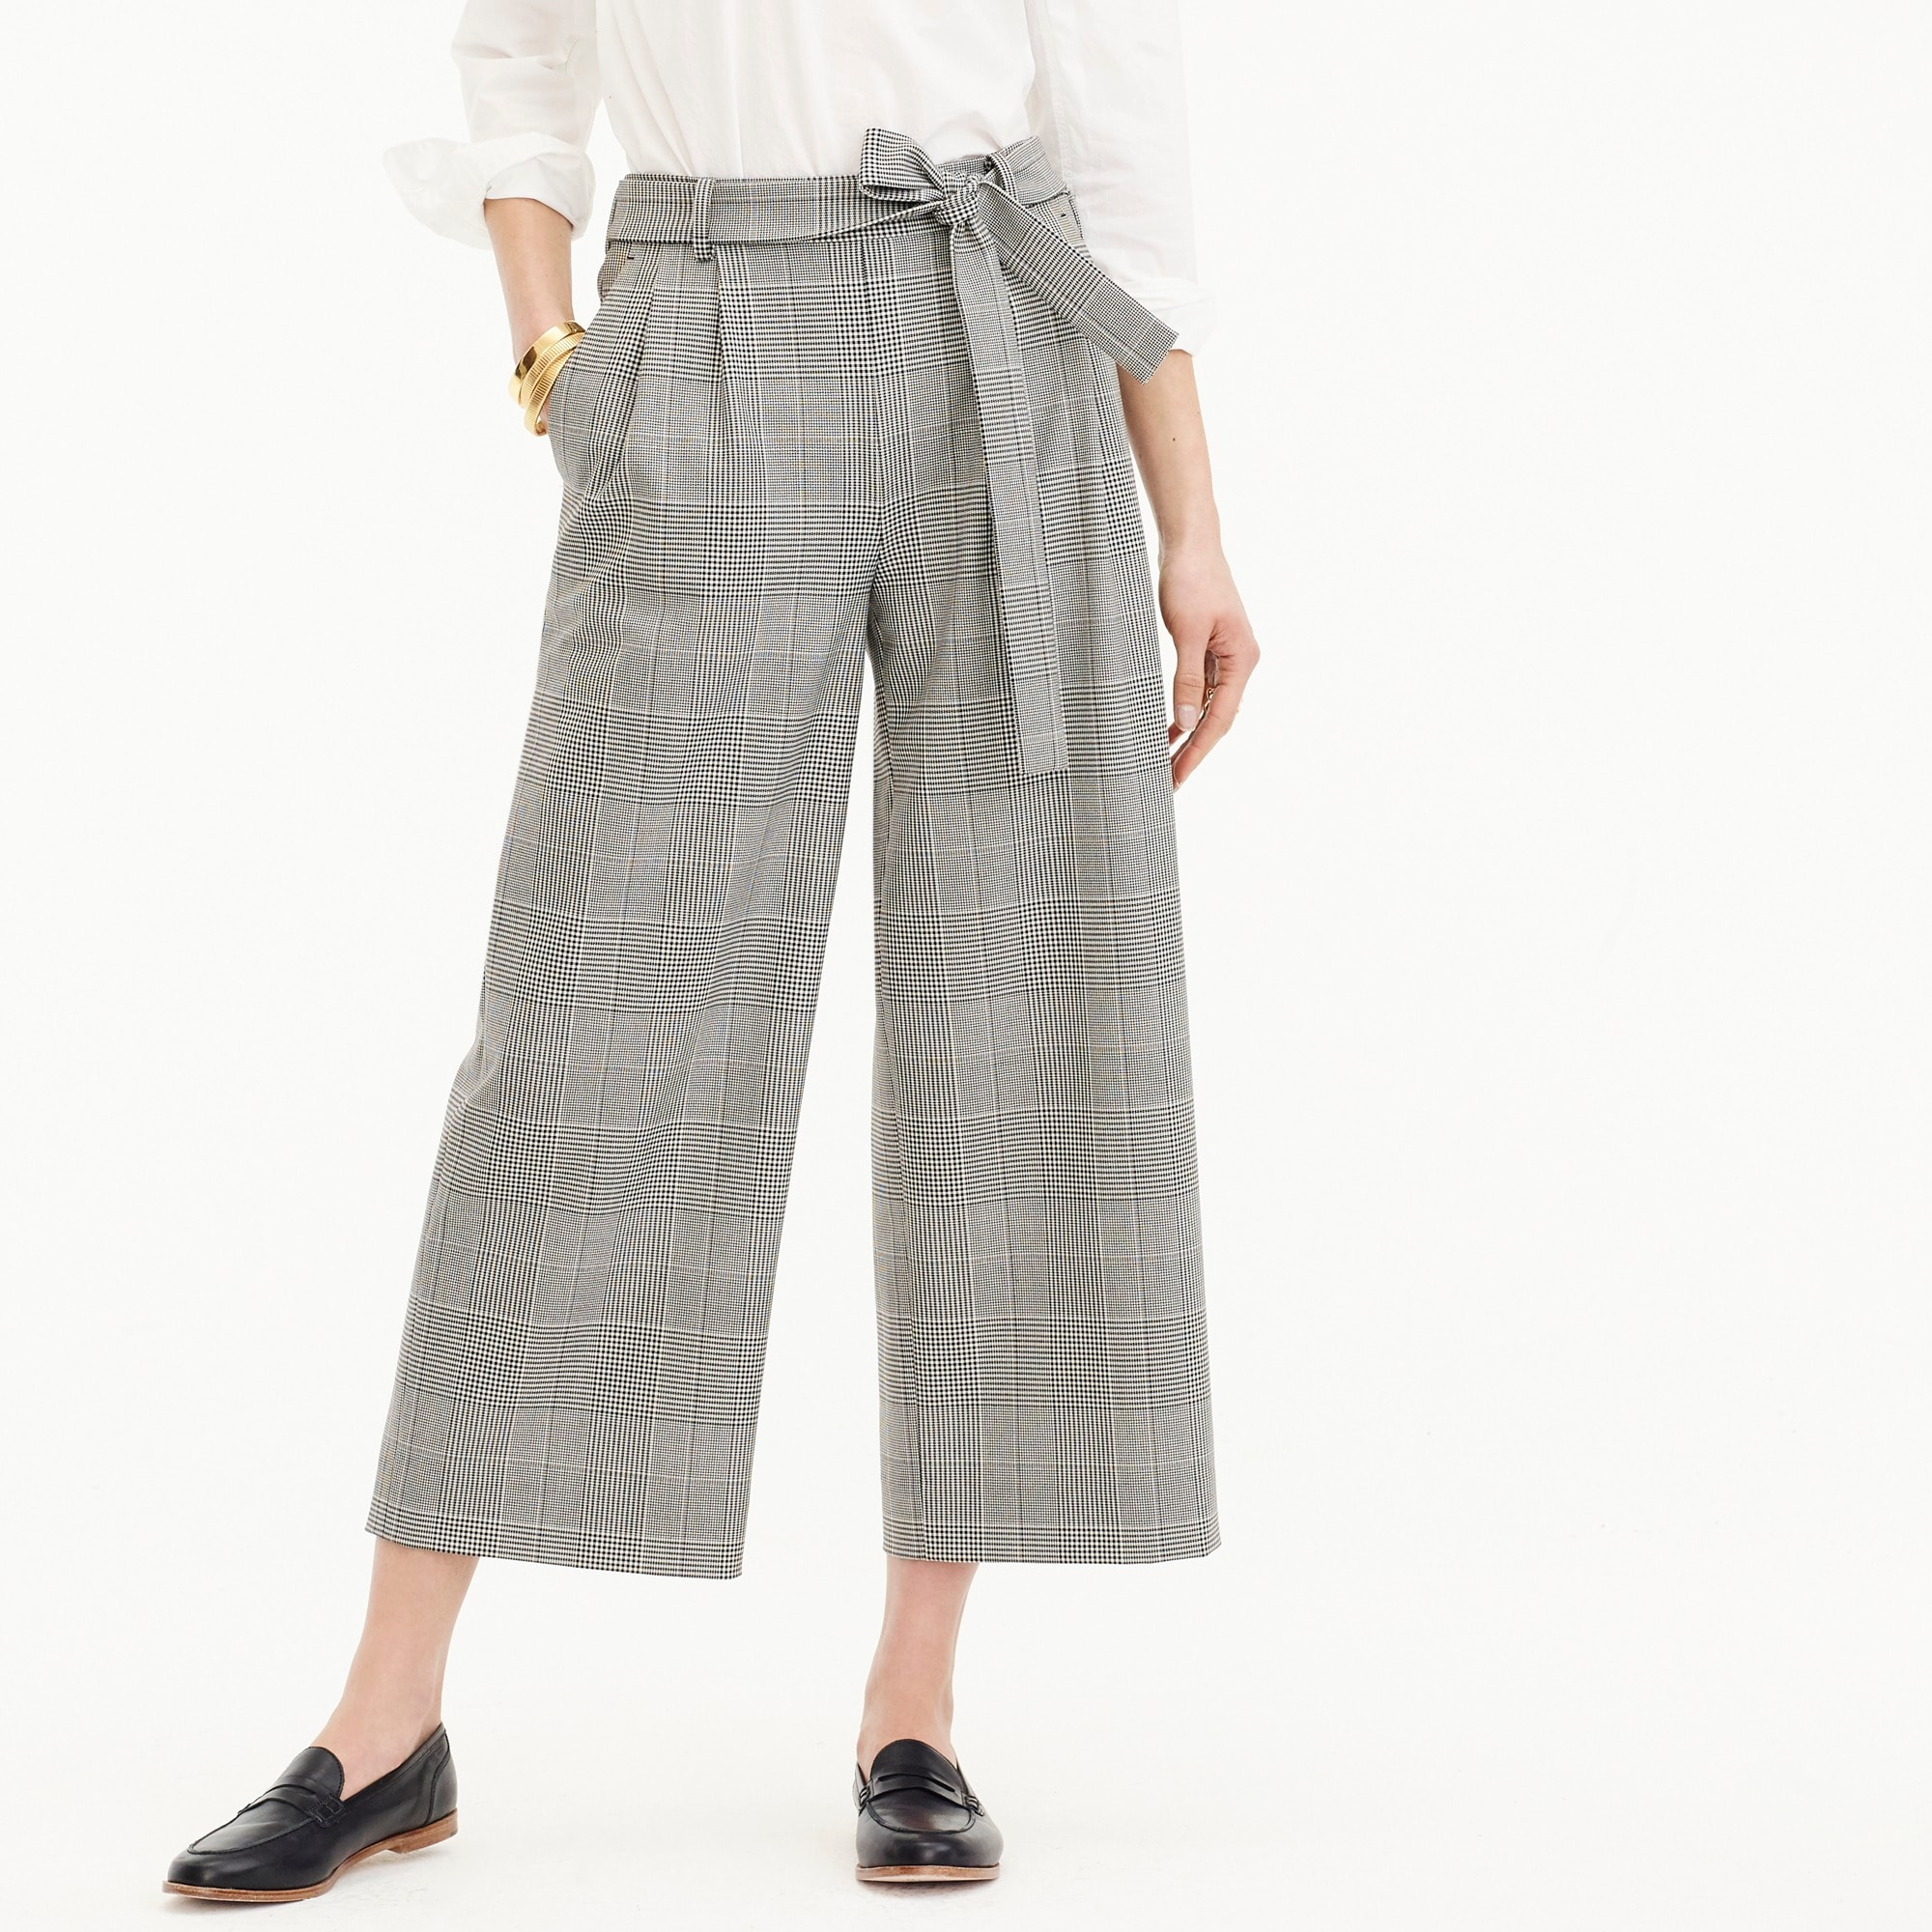 Image 3 for Pleated wide-leg pant in glen plaid